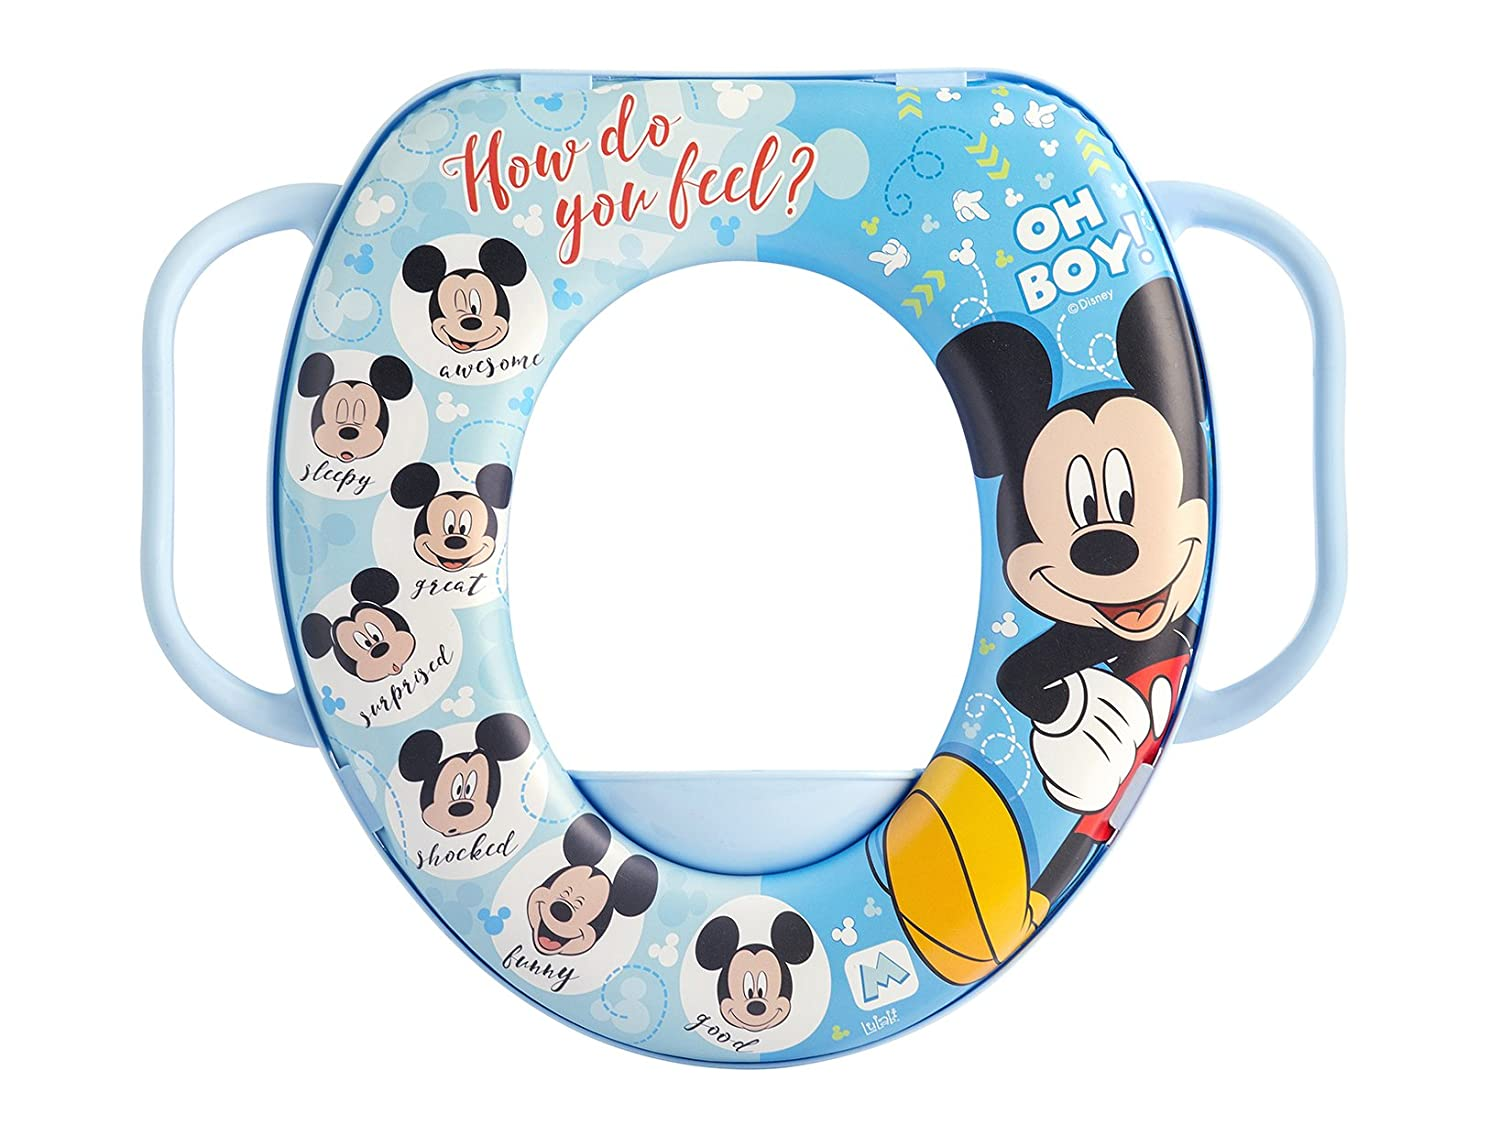 lulabi 8014 Disney Mickey réducteur WC Soft, multicolore 5500